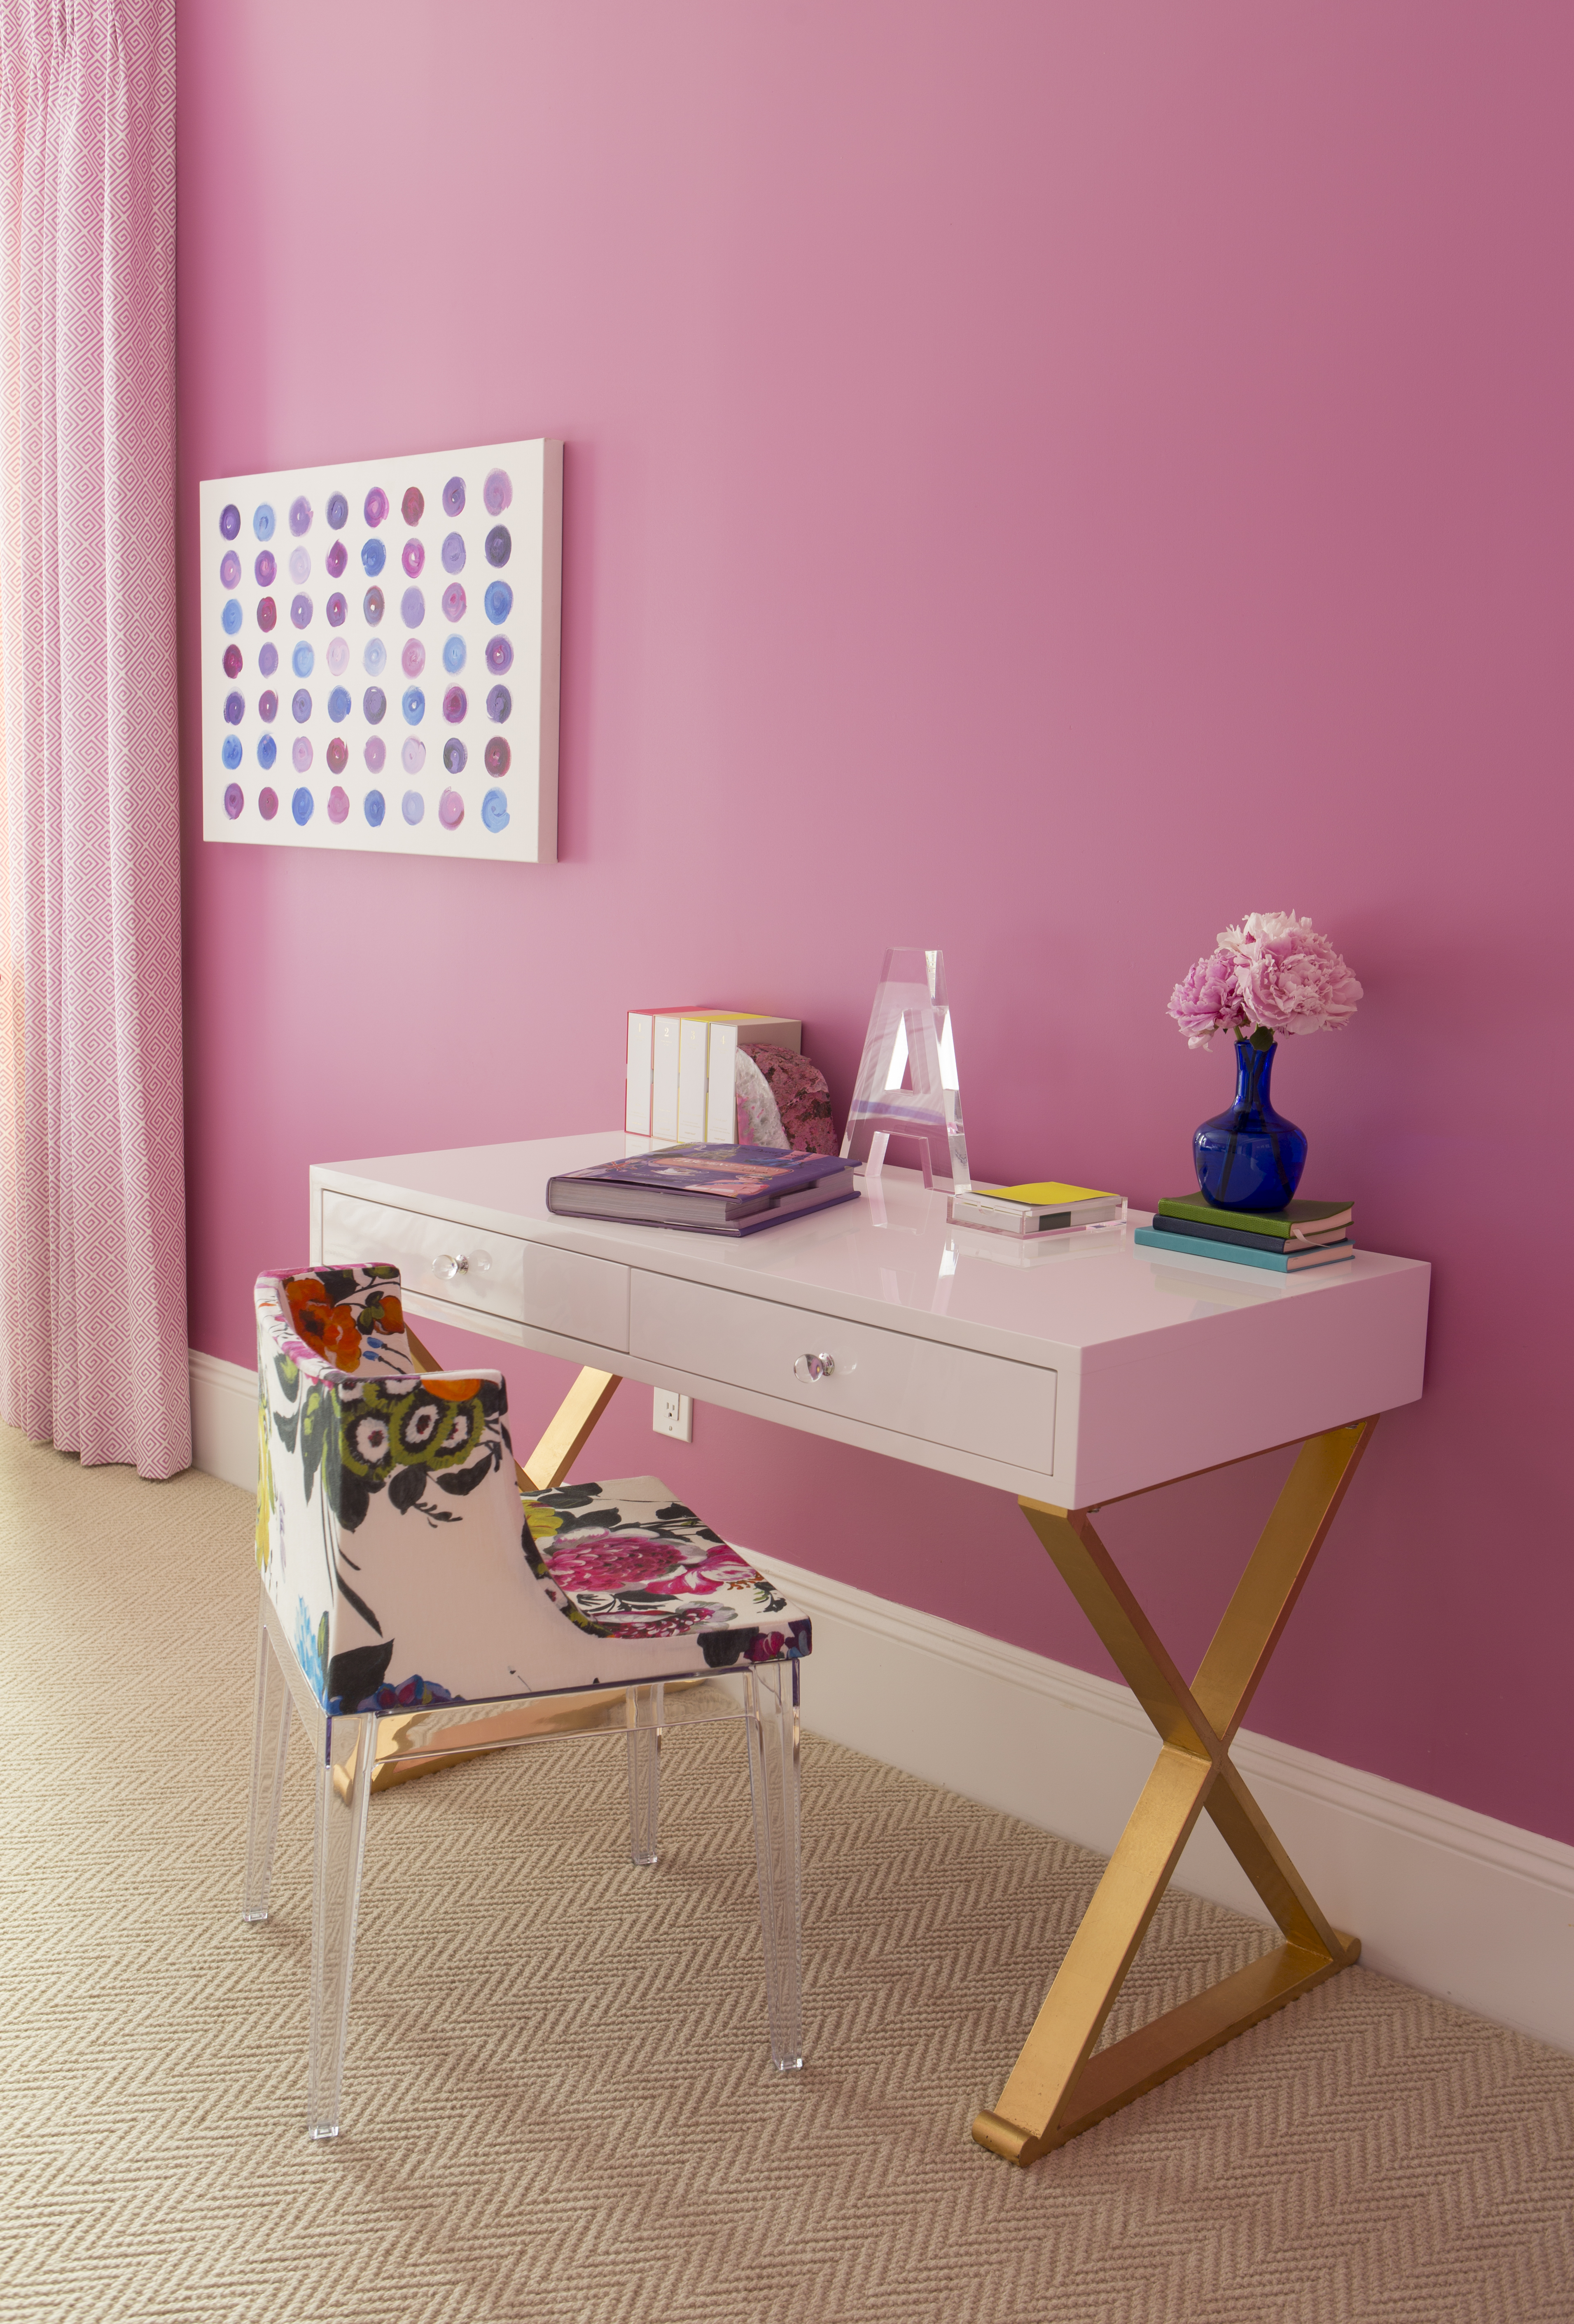 caitlin wilson | street of dreams project: pink bedroom reveal